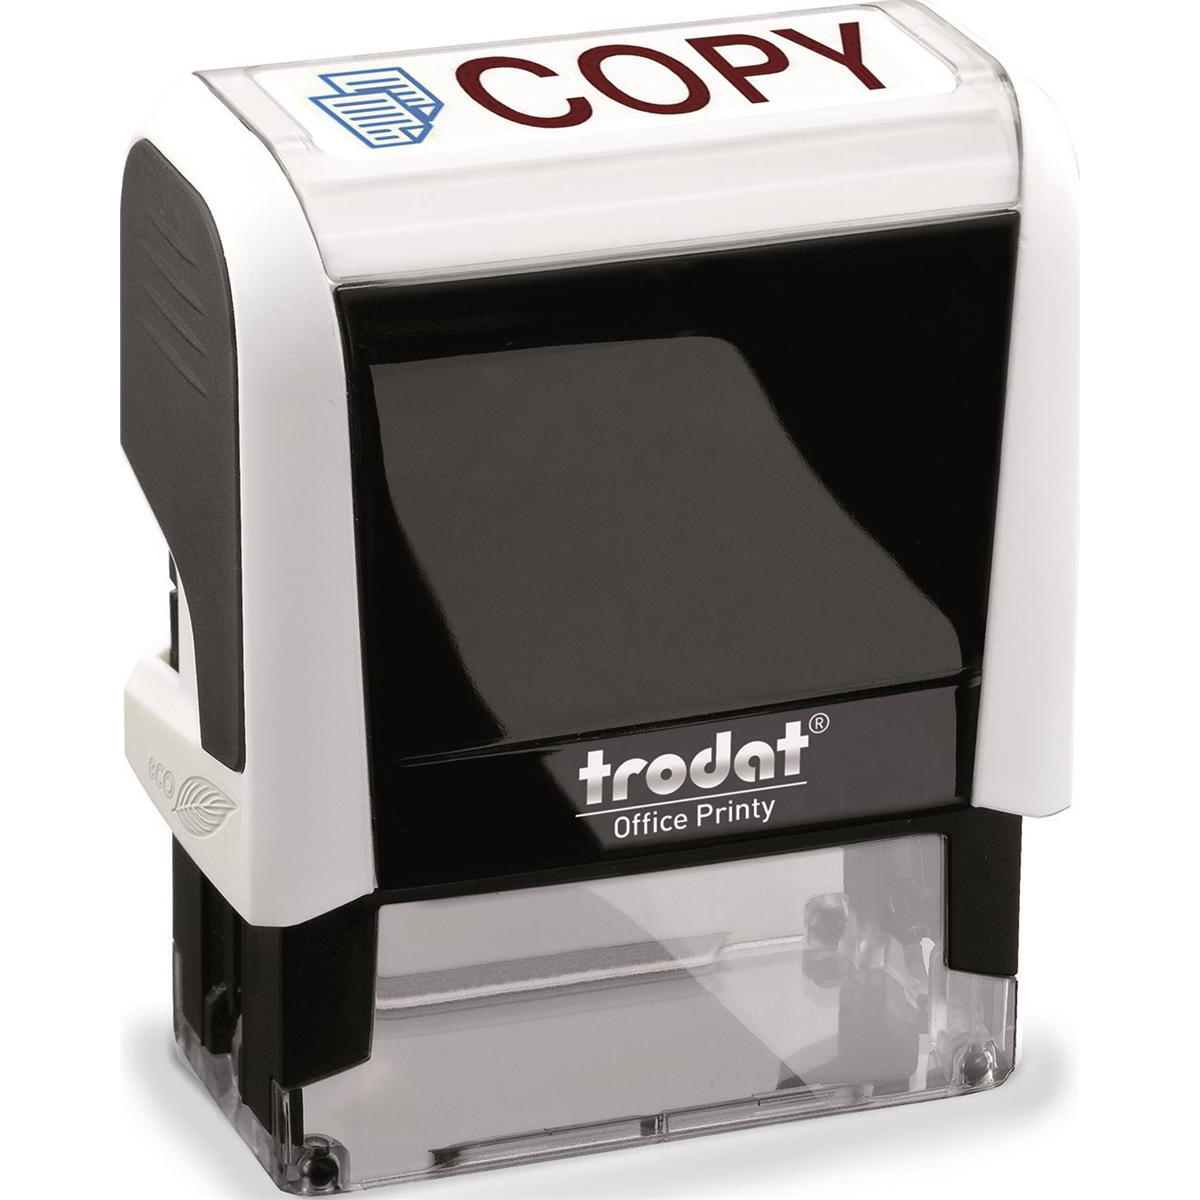 Trodat Office Printy Stamp Self-inking COPY 46x16mm Reinkable Red and Blue Ref 77298